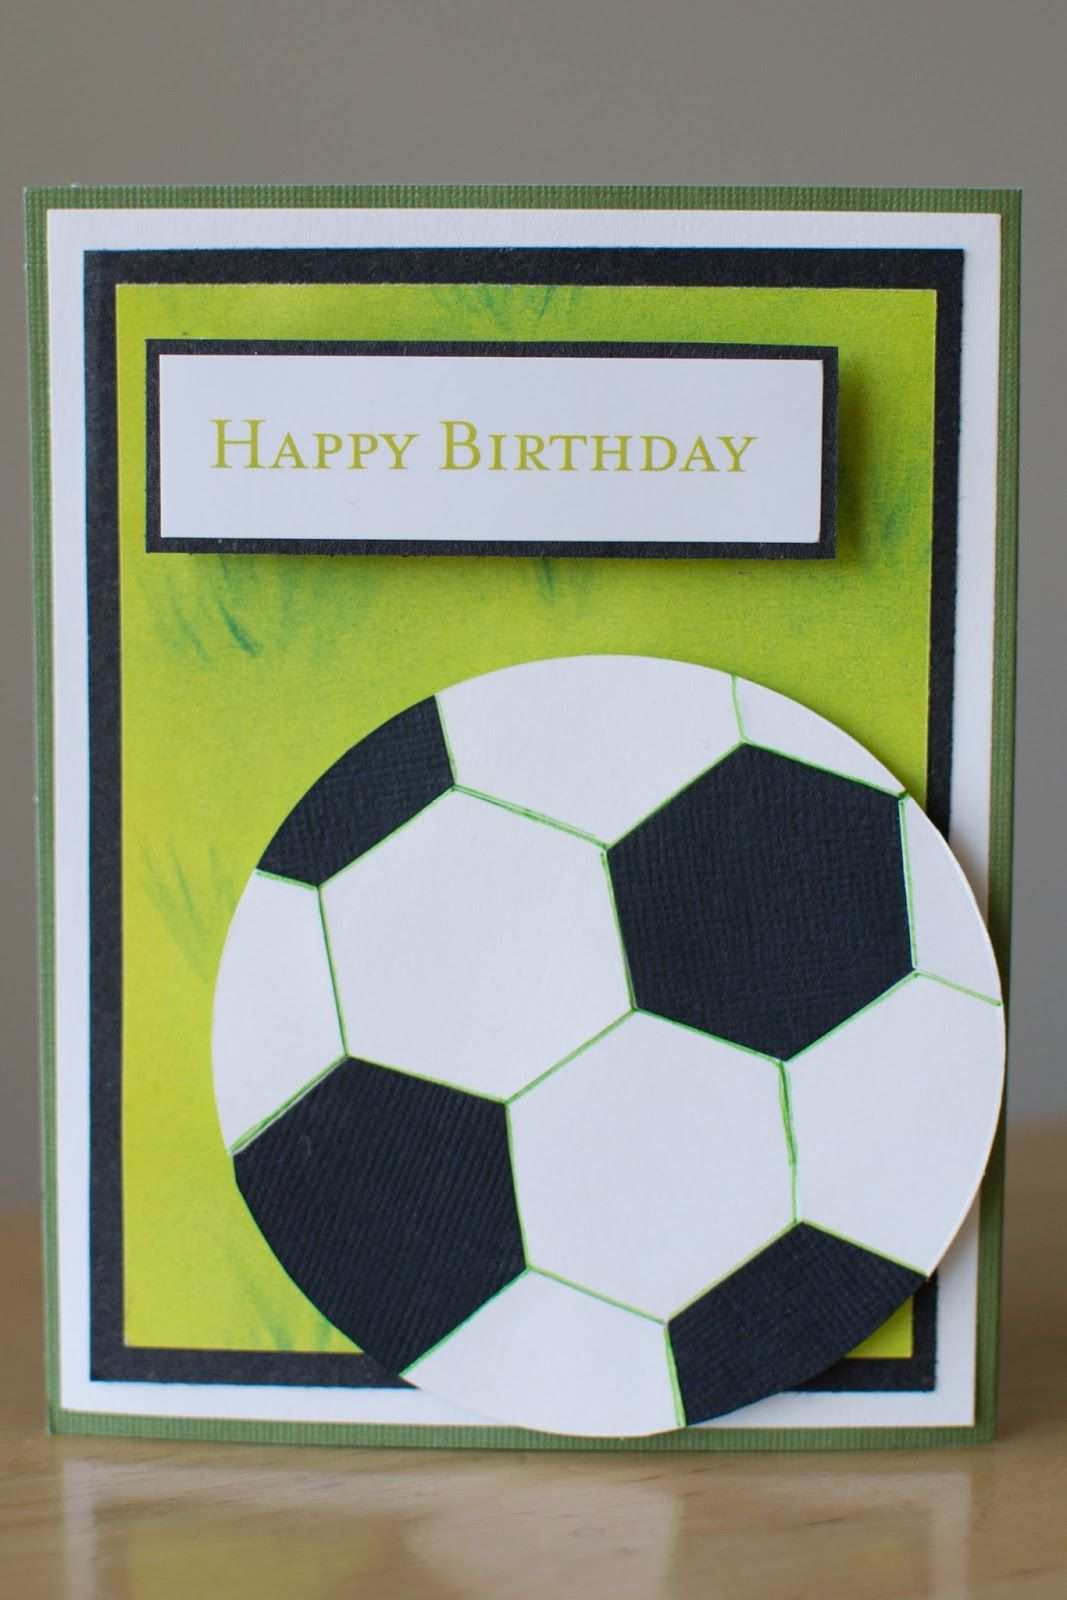 Puddle Designs April Soccer Cards Birthday Cards For Boys Birthday Cards For Men